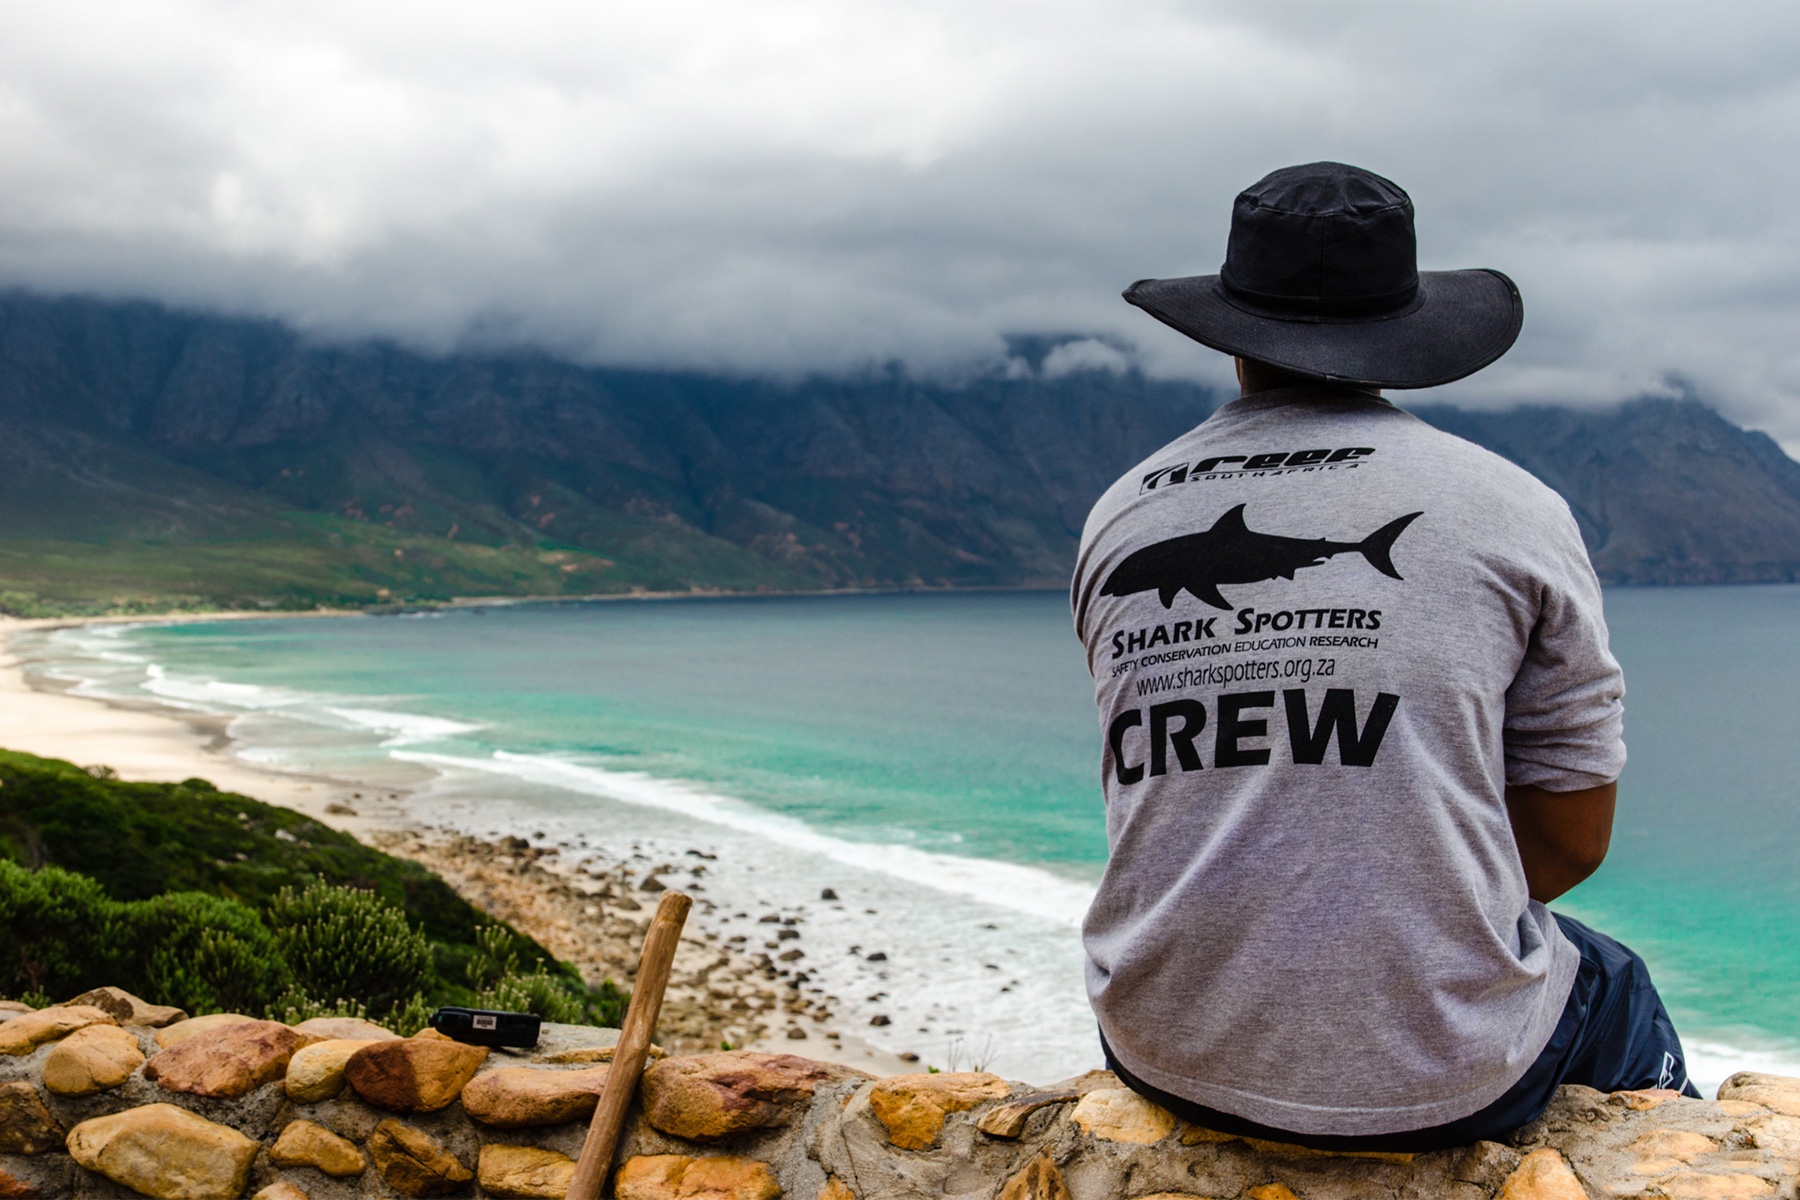 a memeber of cape town's shark spotters crew sat overlooking a beach, photographed by Sean Geer